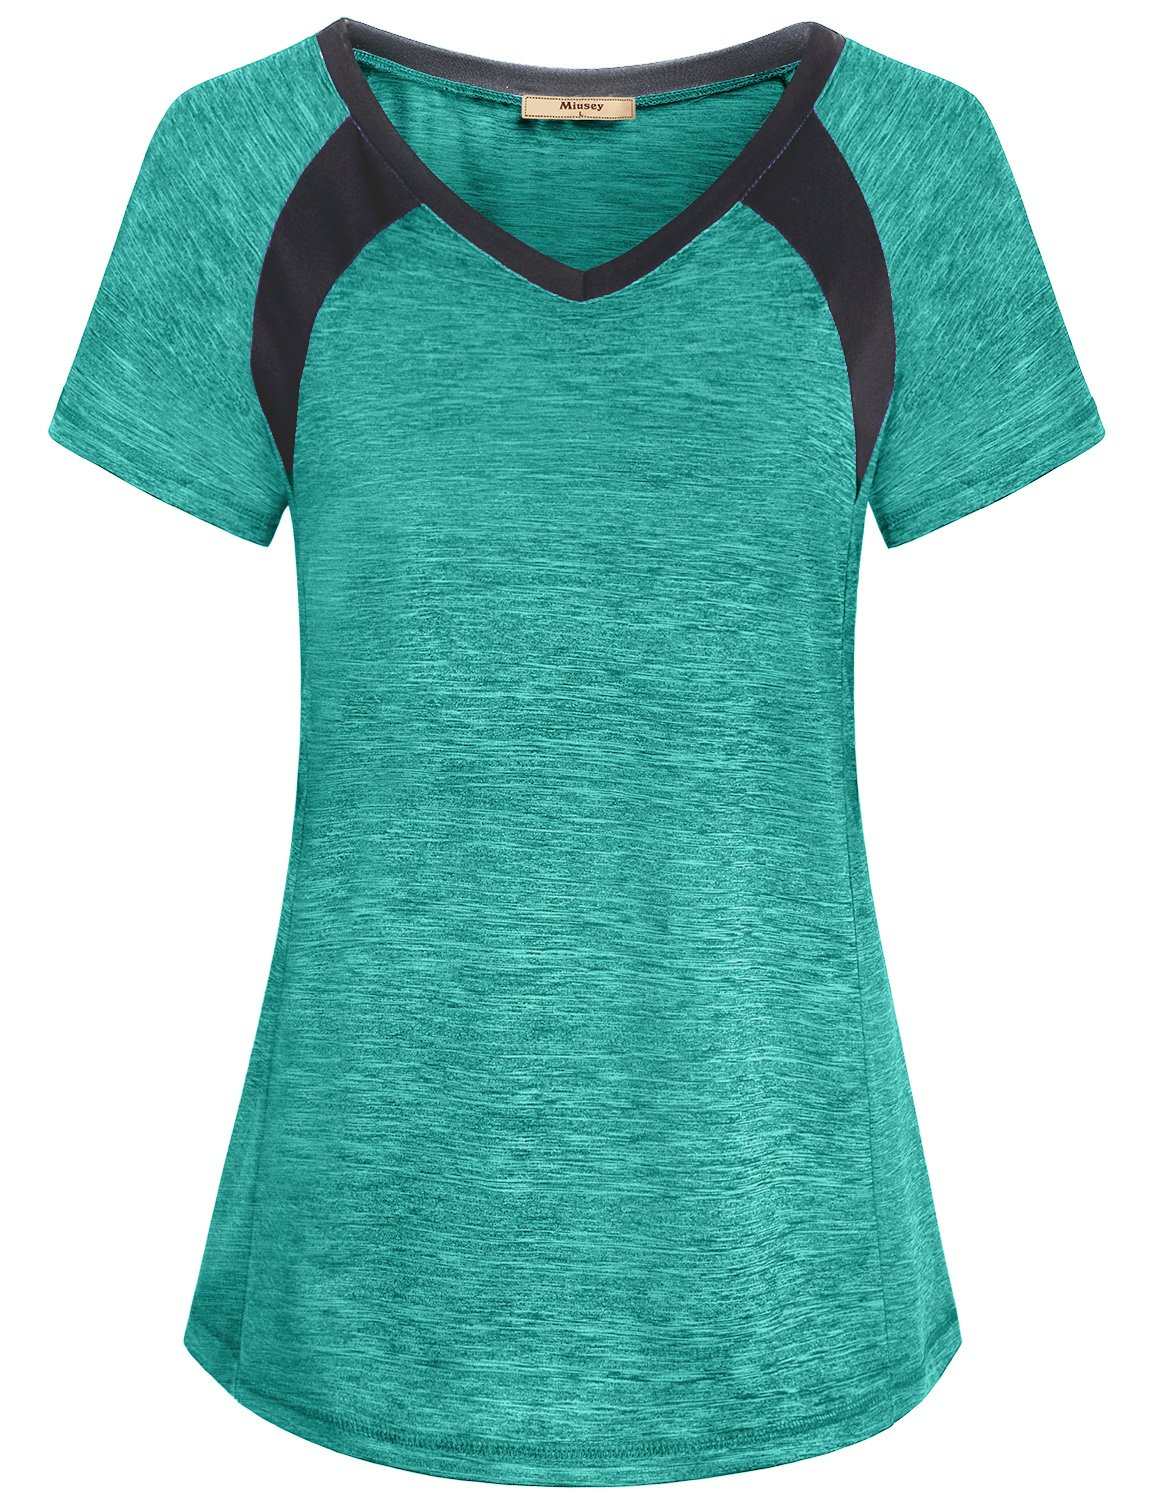 Miusey Exercise Tops for Women, Girls Dry Fit Shirts Short Sleeve Raglan Althetic Wear V Neck Chic Elastic Smooth Running Tunic Activewear Workout Fitness Tees Green M